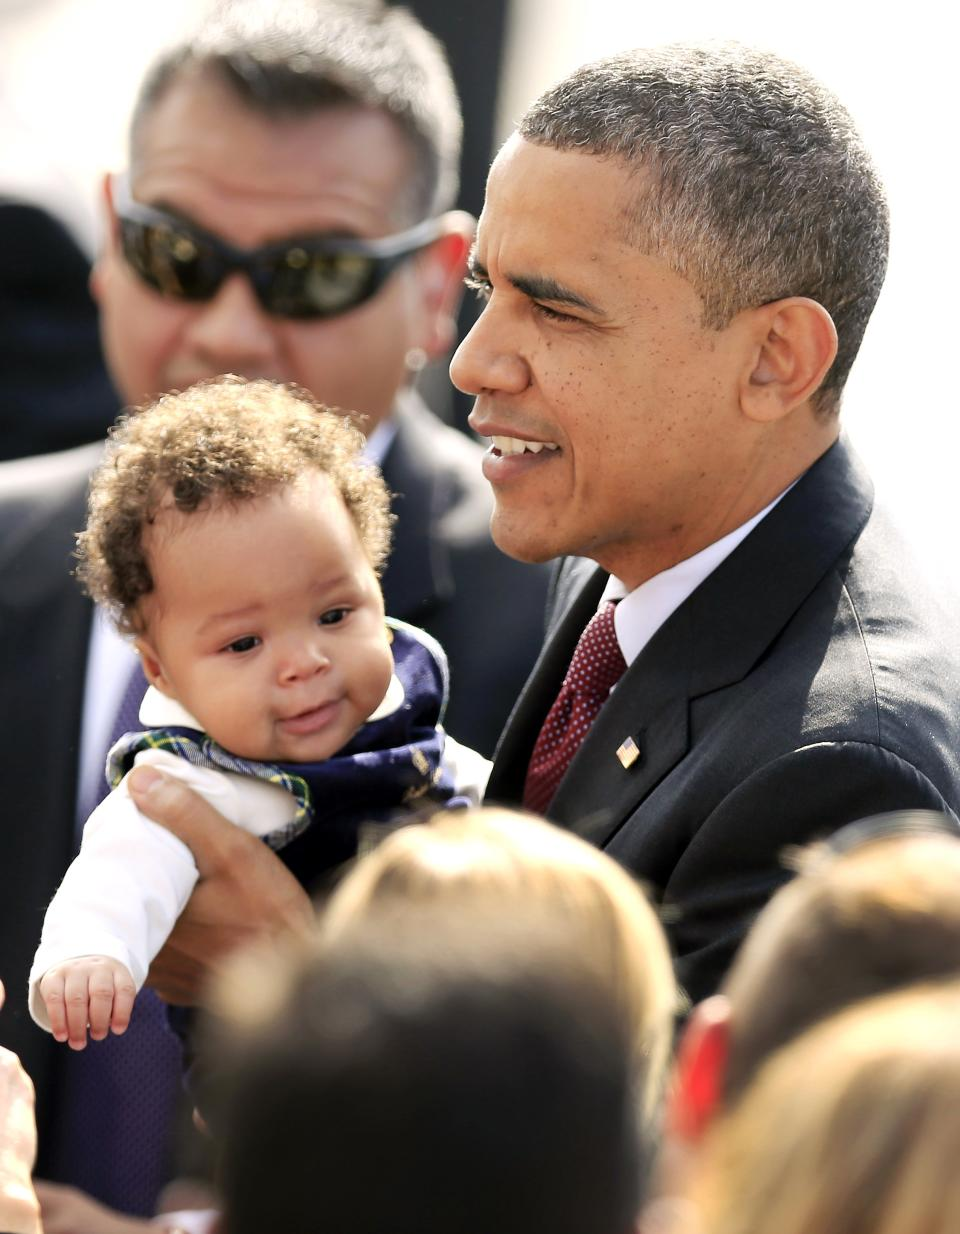 President Barack Obama holds 4-month-old Milan Maxey Young of Boston after arriving in Manchester, N.H. for a campaign stop Saturday, Oct. 27, 2012. (AP Photo/Winslow Townson)